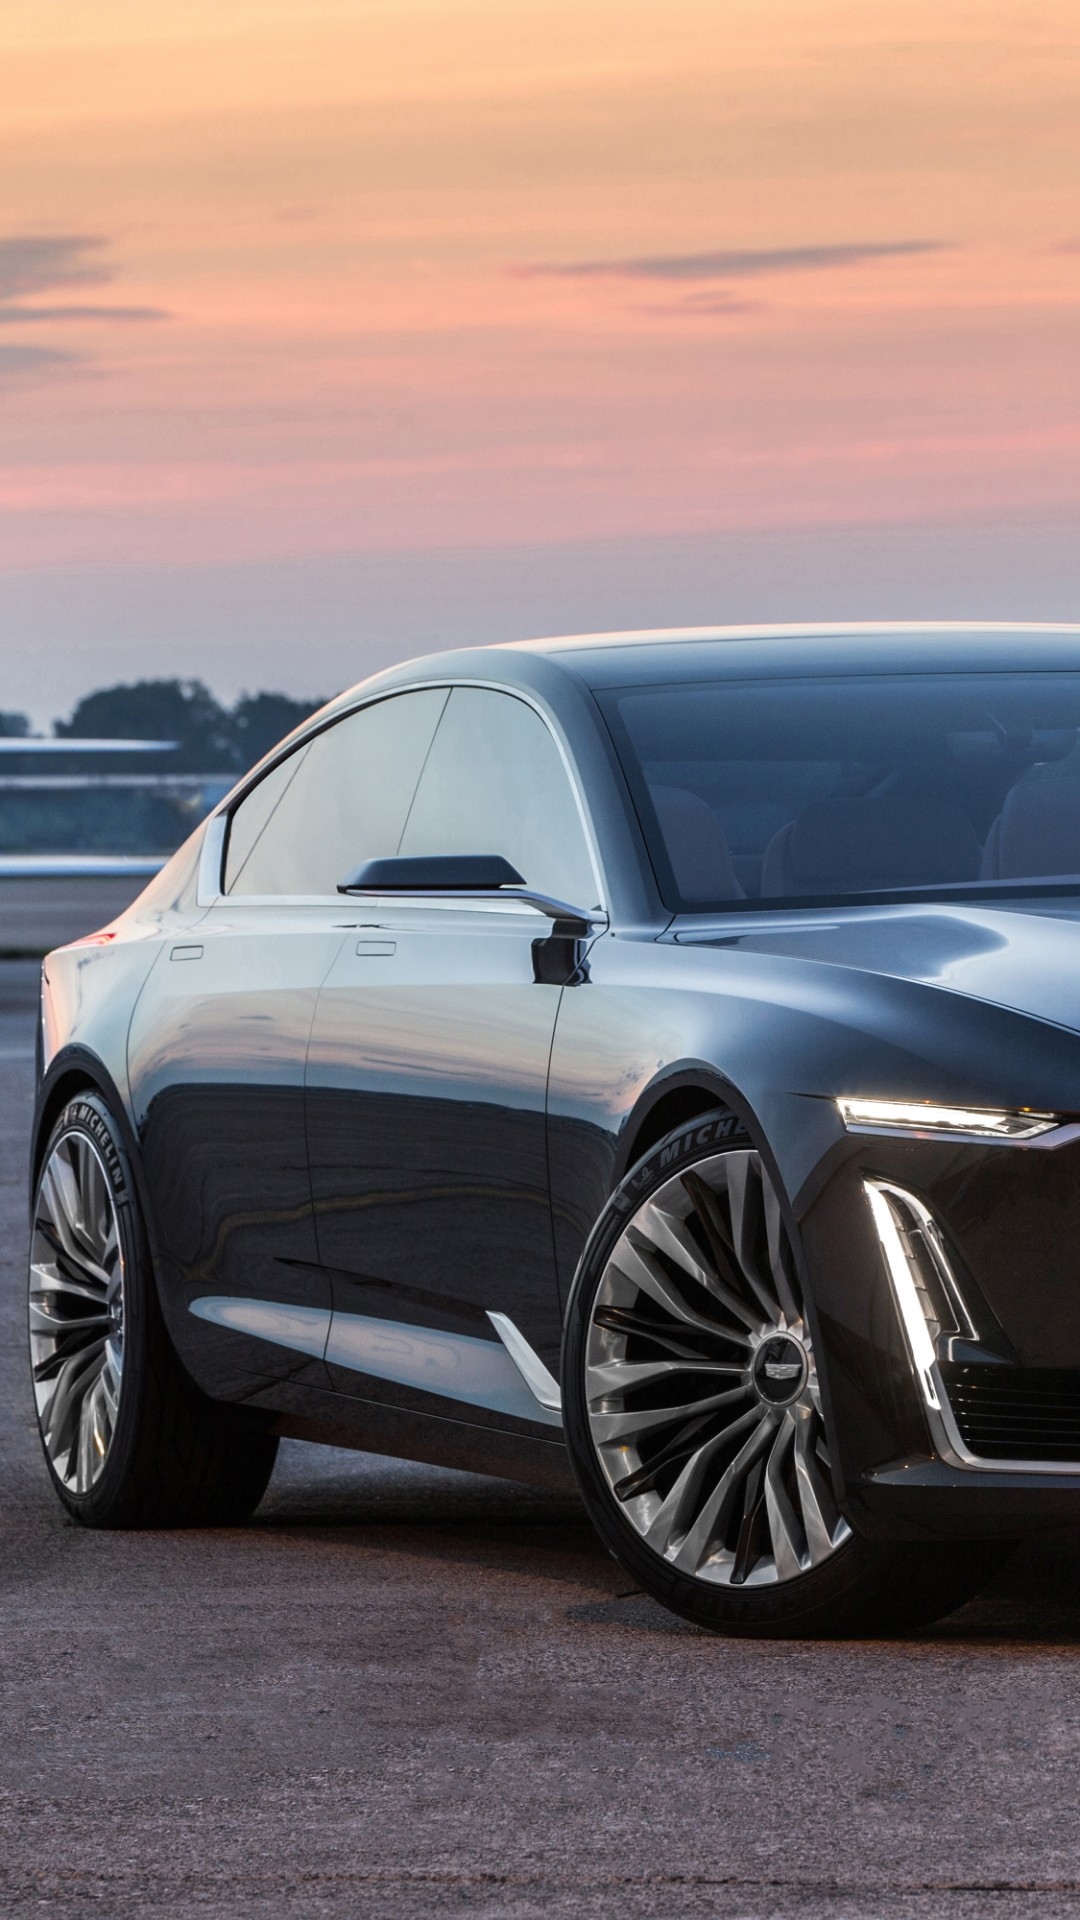 Wallpaper Cadillac Escala, Black, Sedan, Luxury Cars, Cars